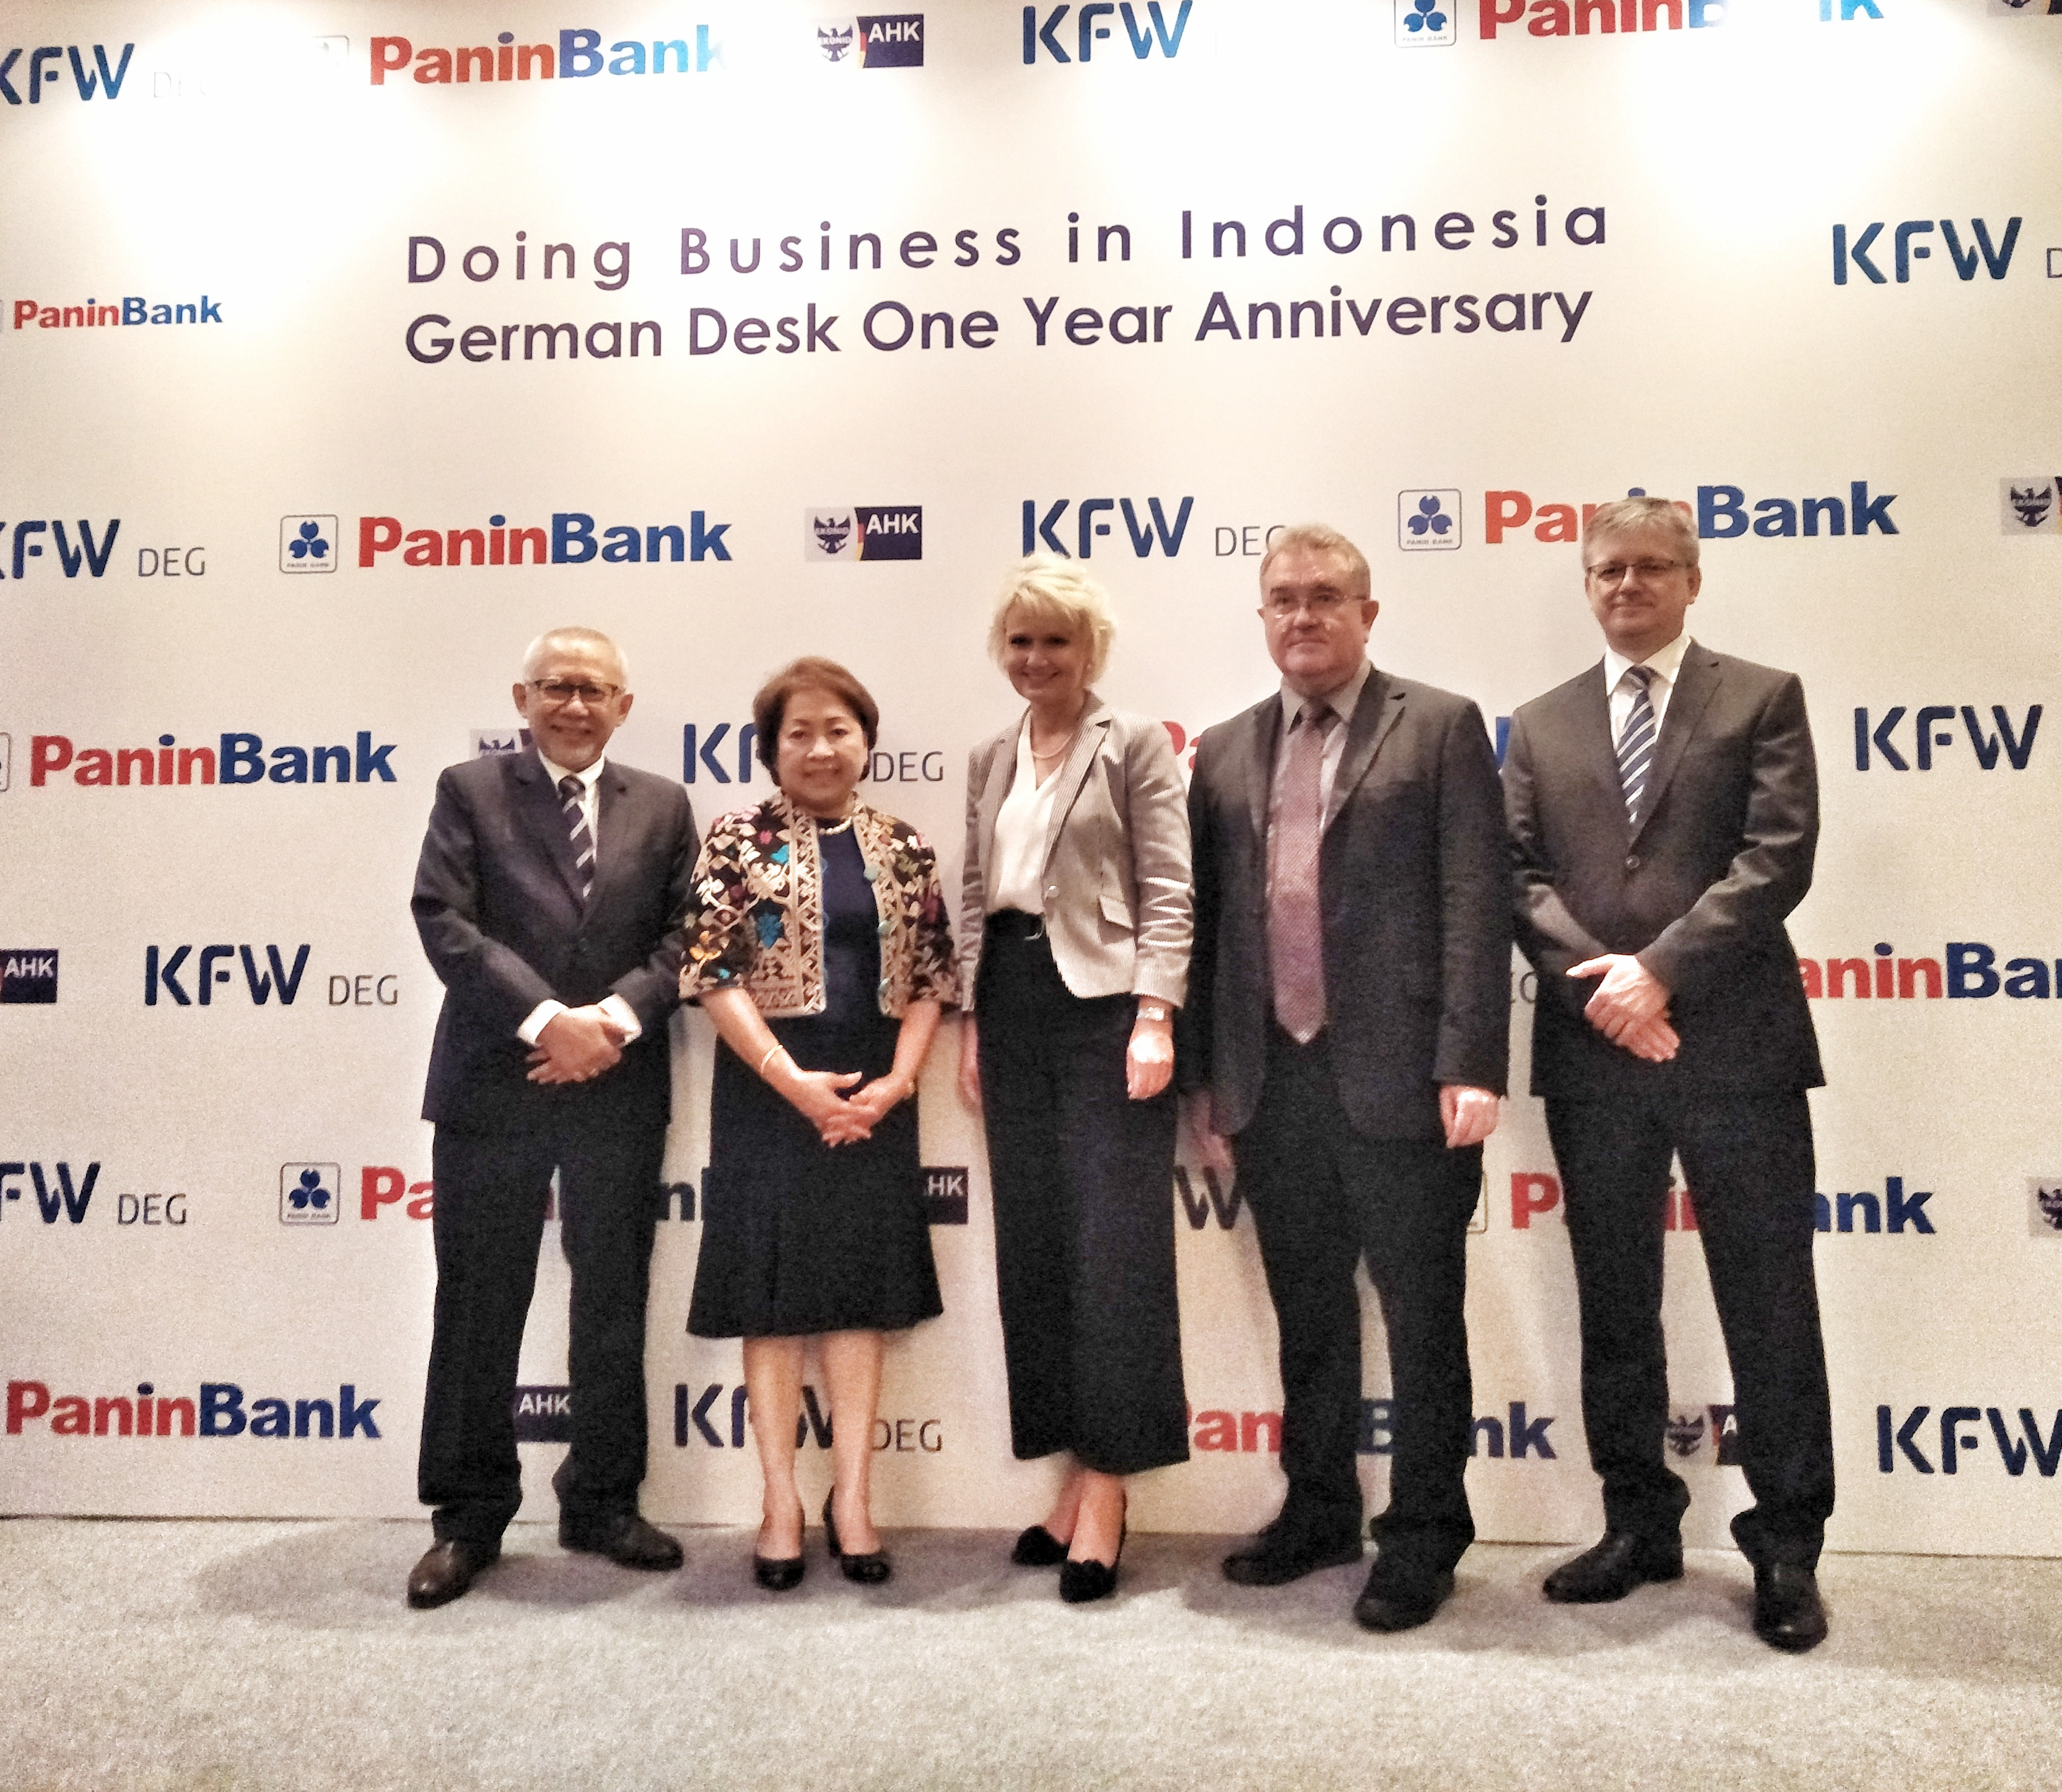 DEG-Panin Group adakan Seminar Doing Business in Indonesia